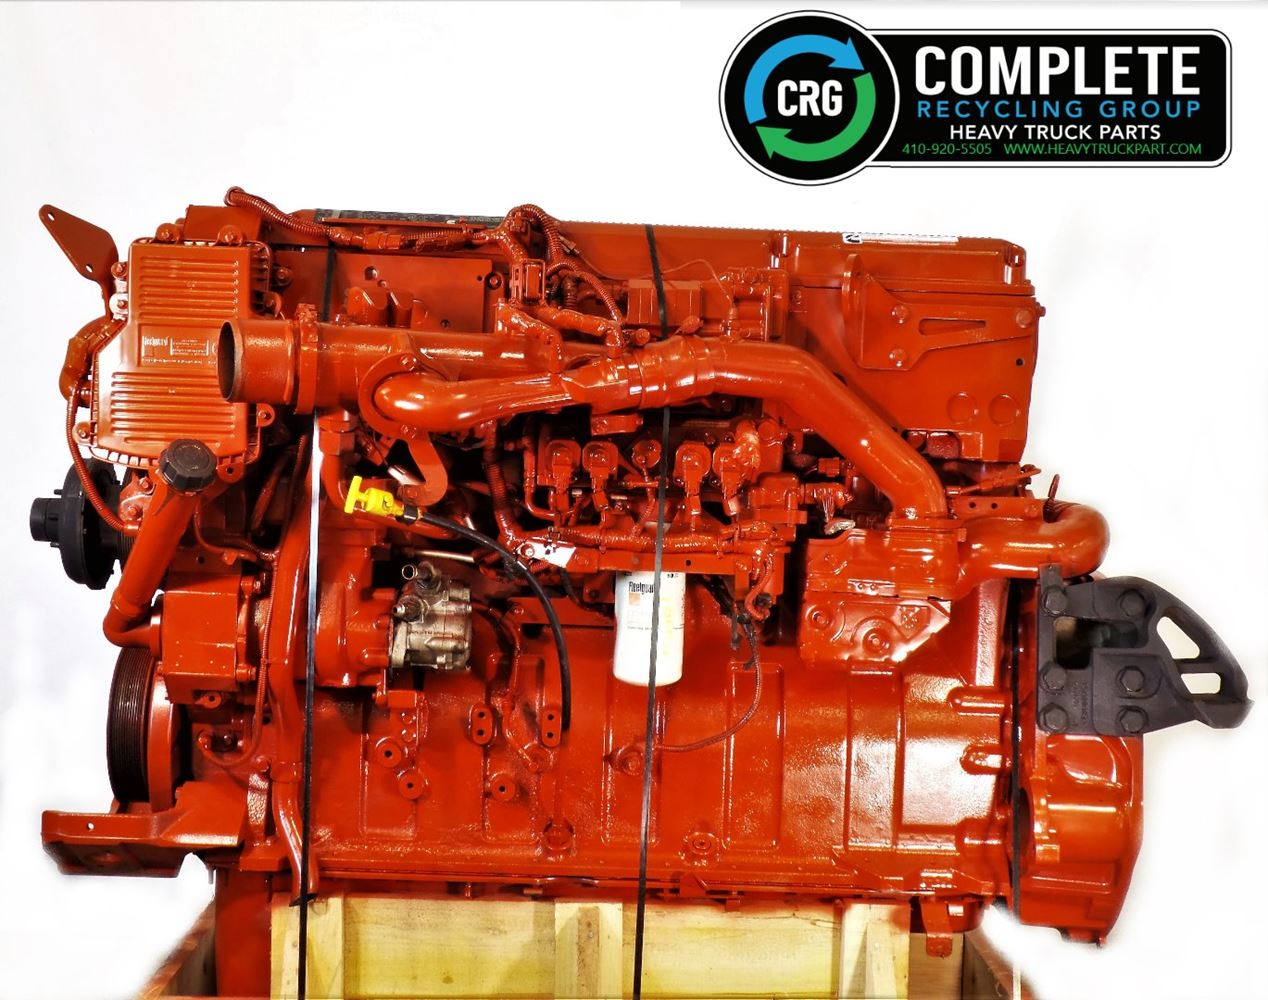 2011 CUMMINS ISX ENGINE ASSEMBLY TRUCK PARTS #719026